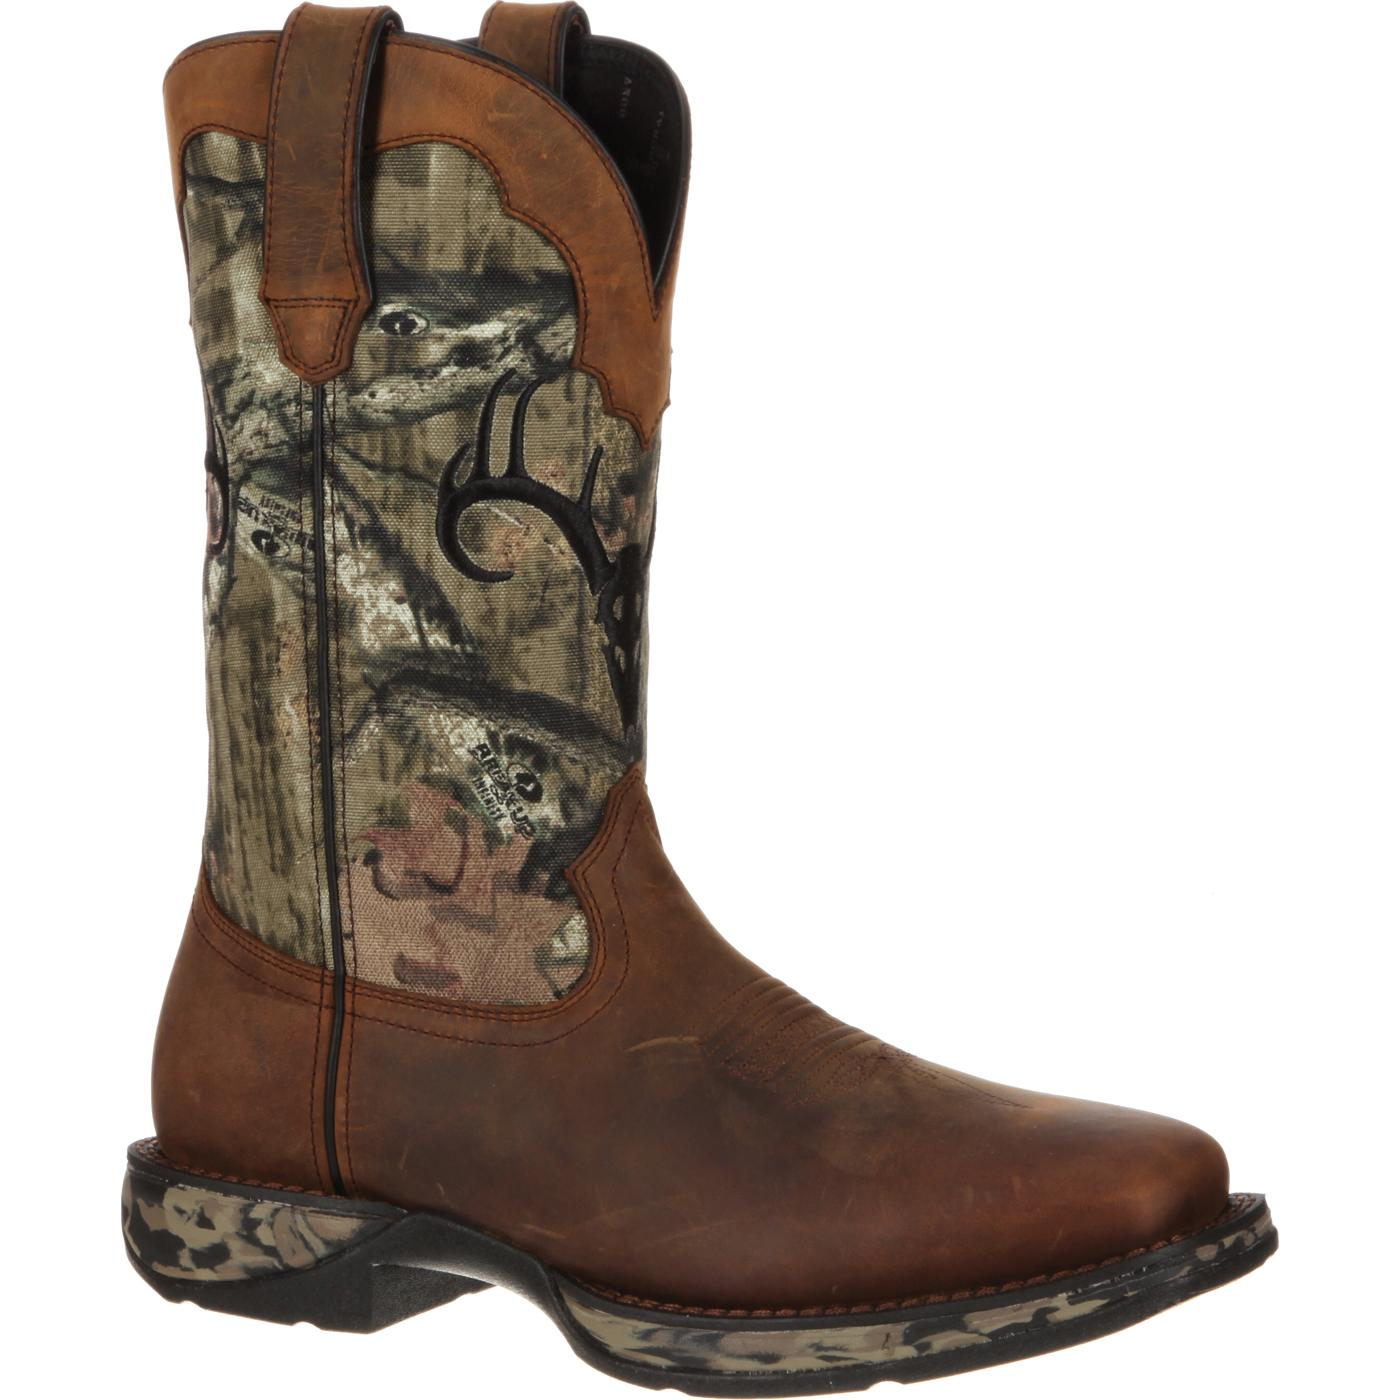 Rebel By Durango Waterproof Camo Deer Skull Western Boot